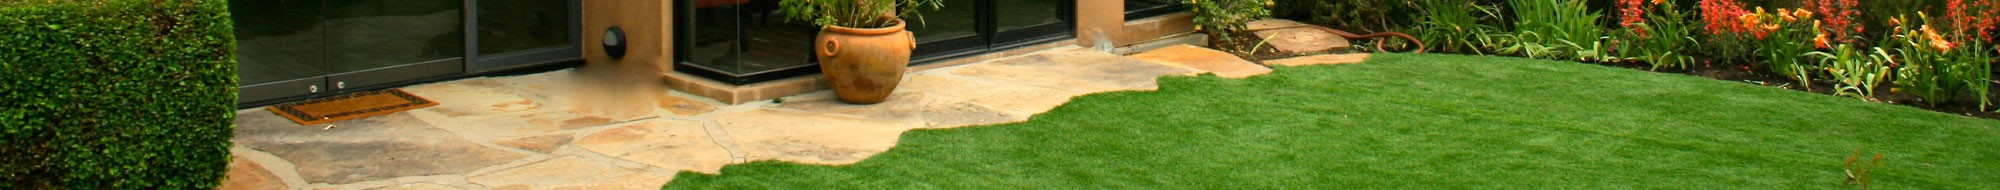 Synthetic Grass for Residential Landscaping